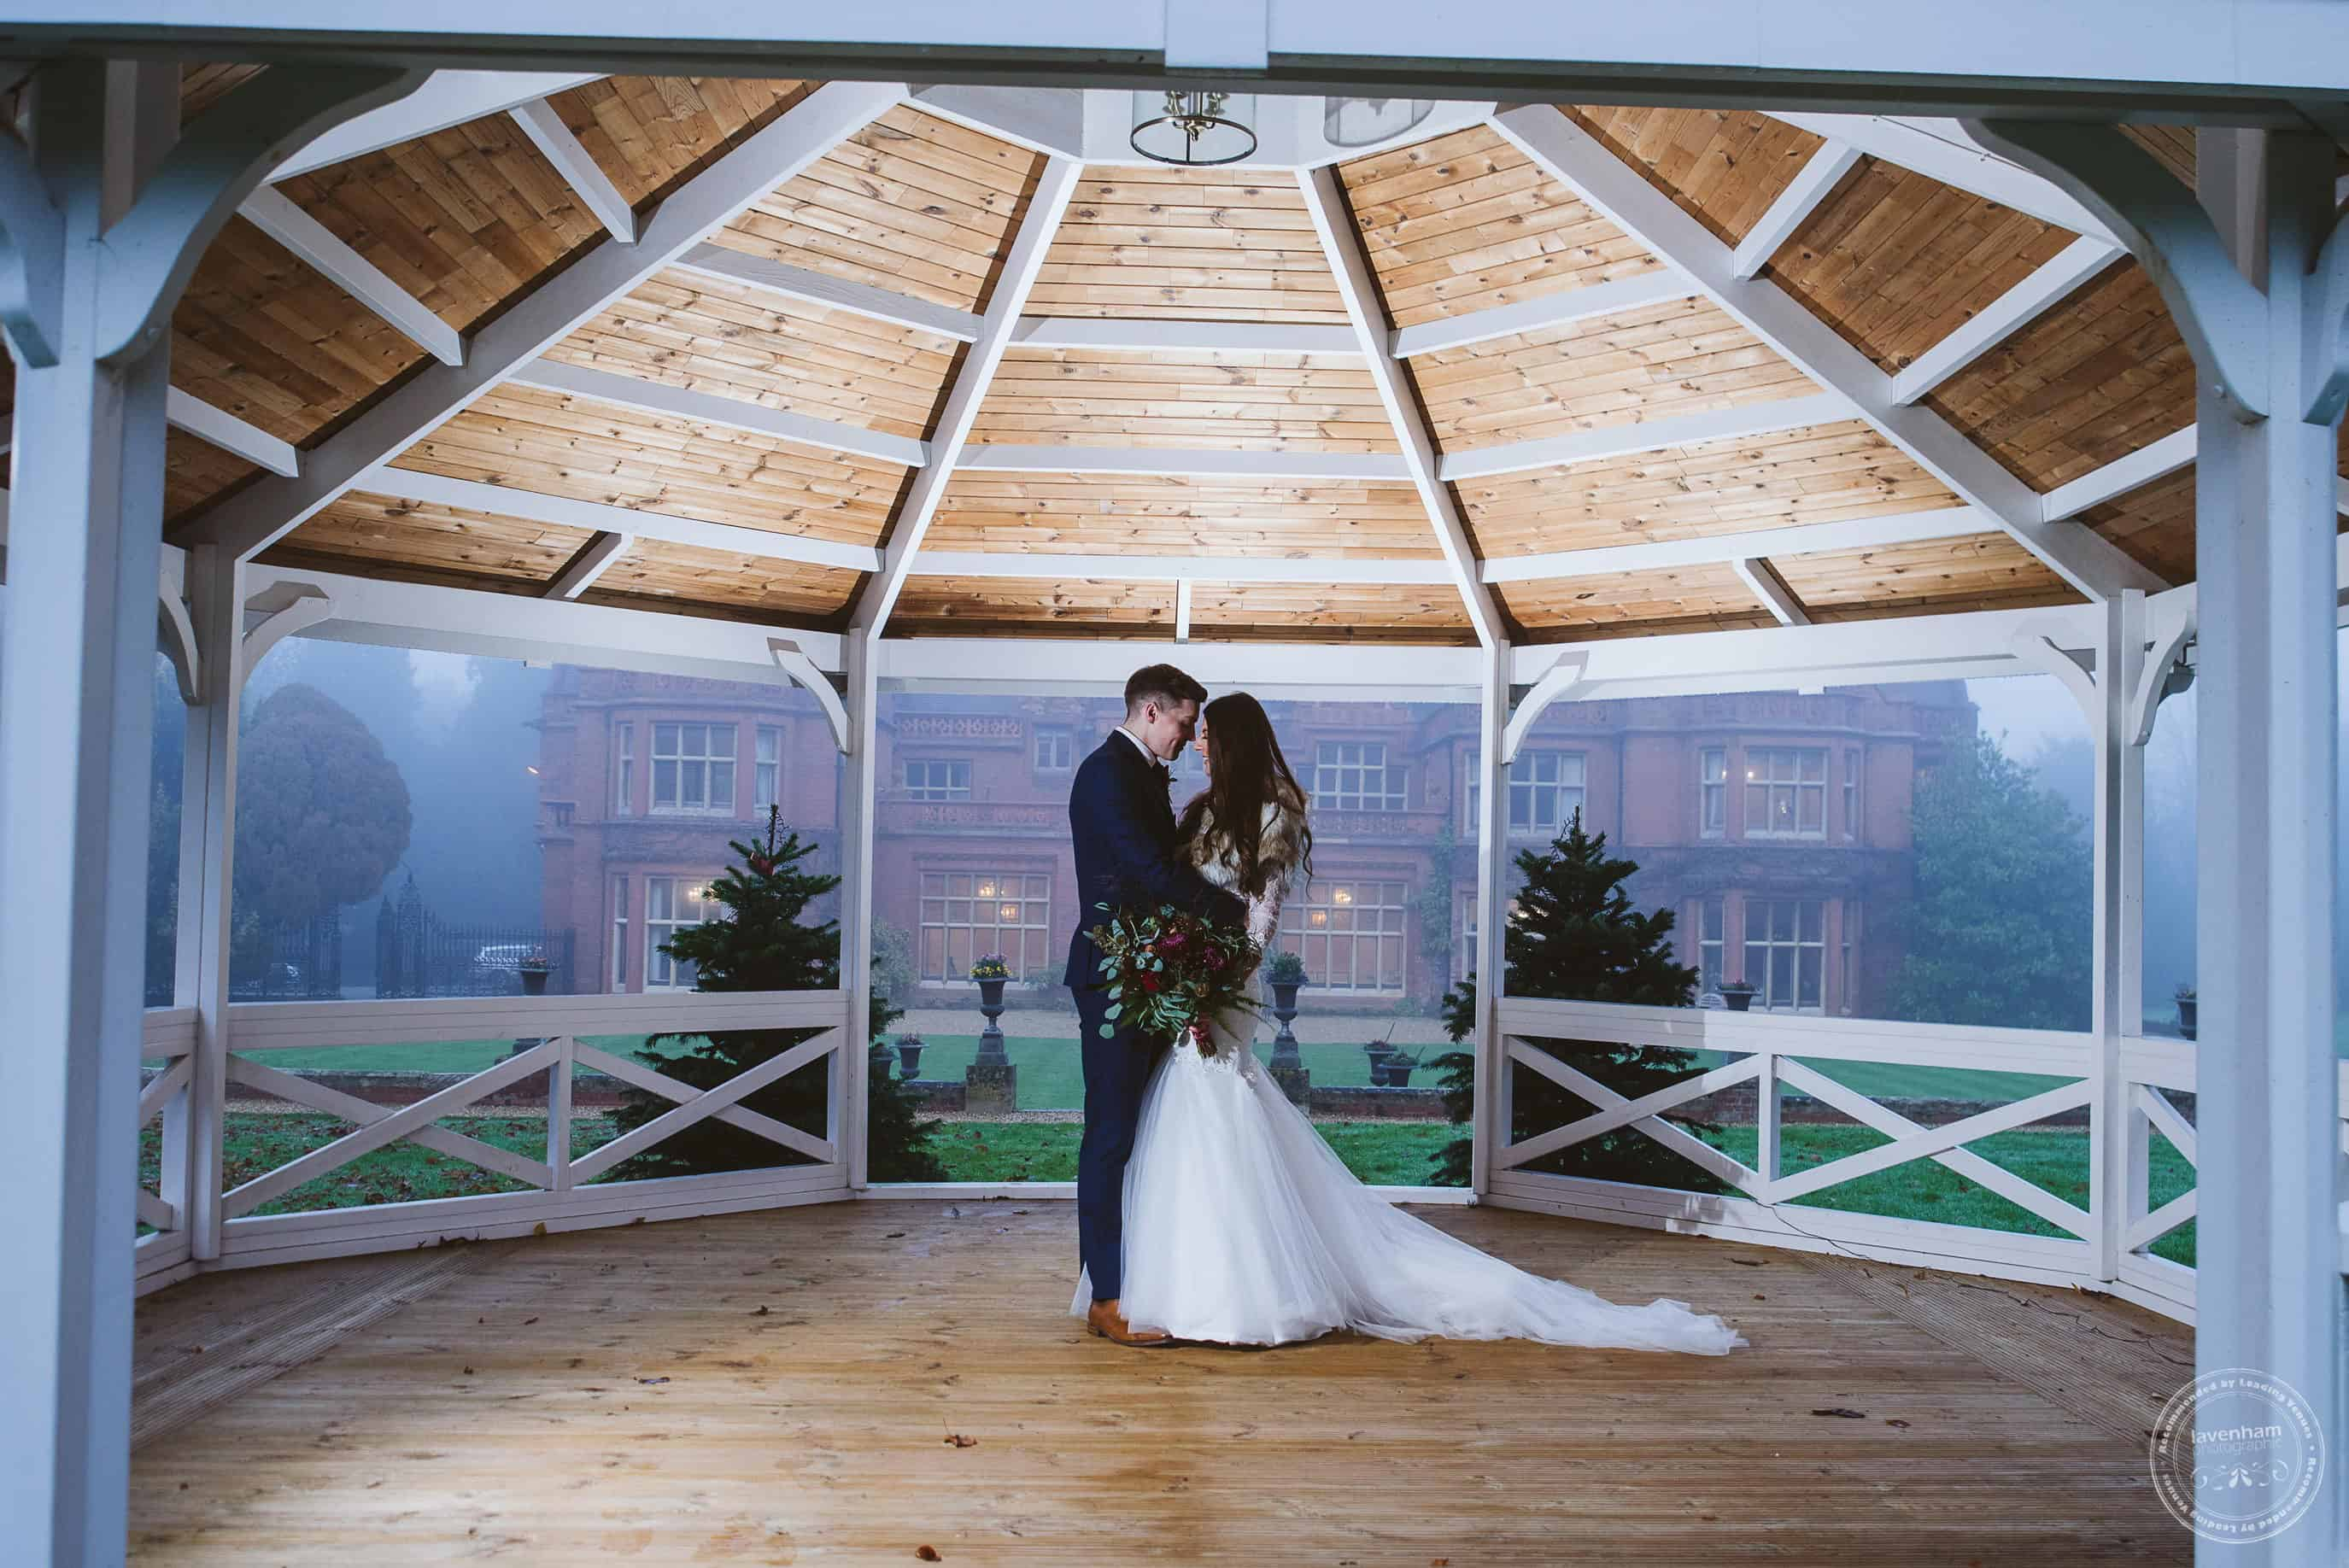 301119 Holmewood Hall Wedding Photographer 183